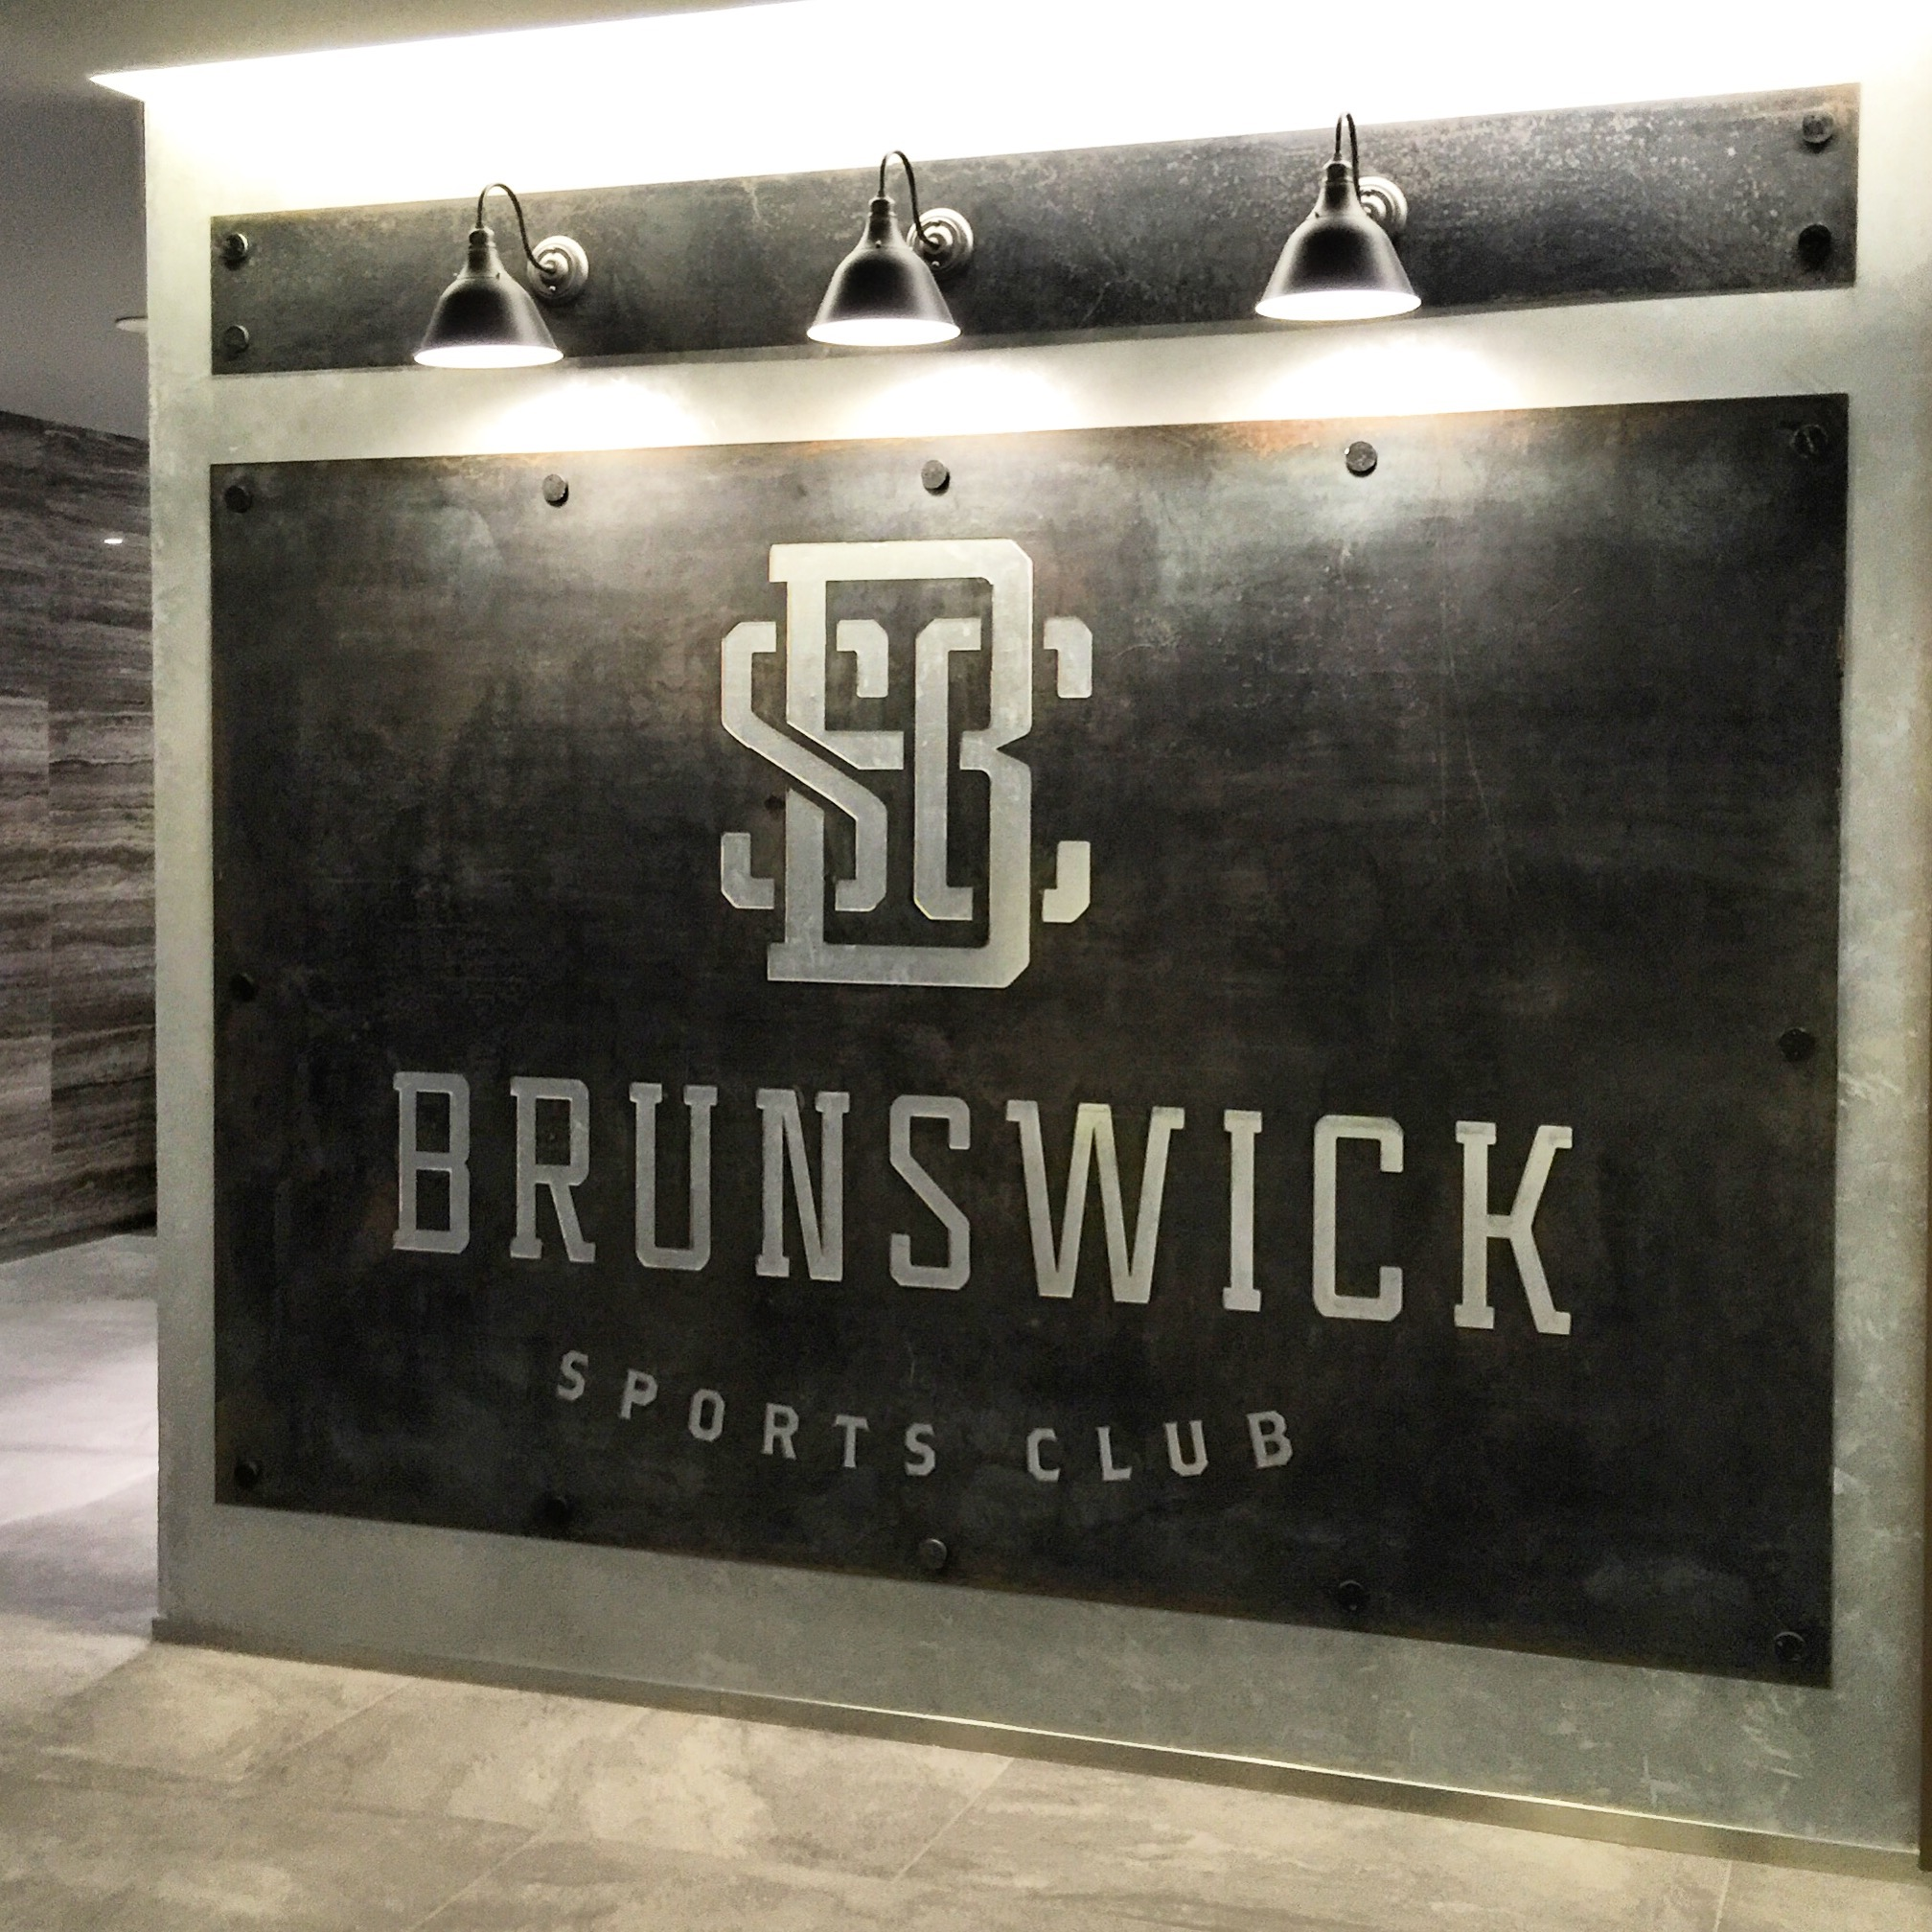 The Brunswick Sports Club